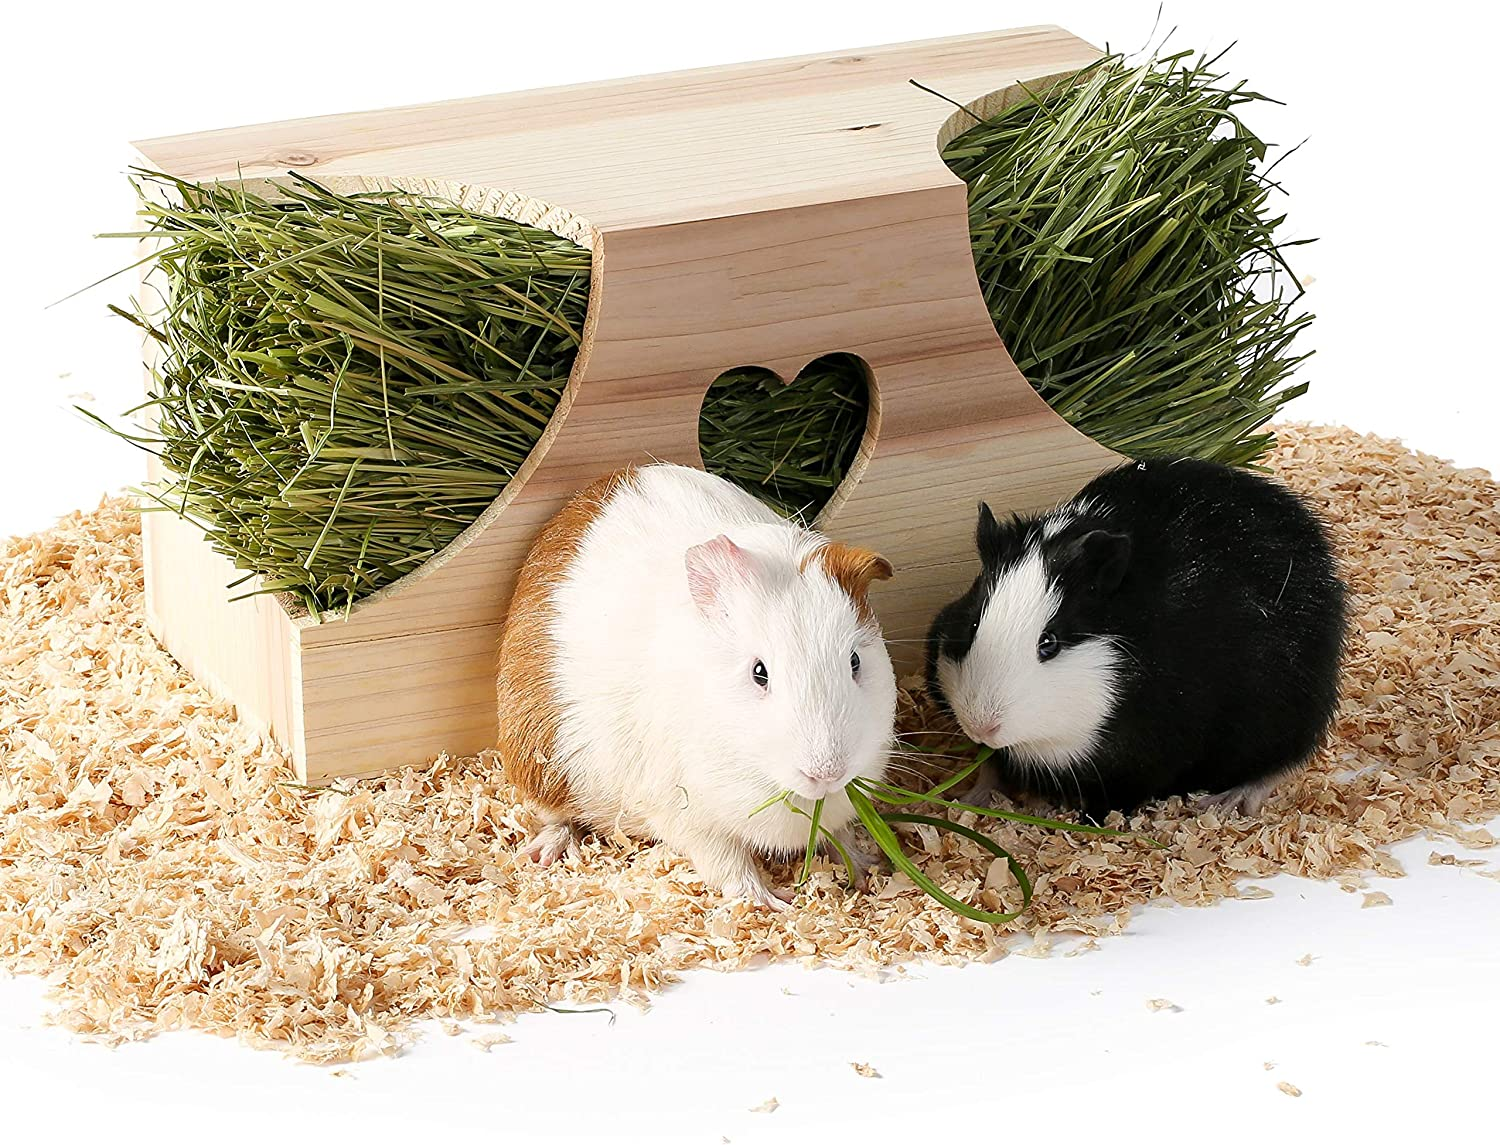 JanYoo Wood Hay Feeder for Guinea Pigs,Rabbit Hay Box Holder Large Hay Dispenser Hanging Standing for Cage